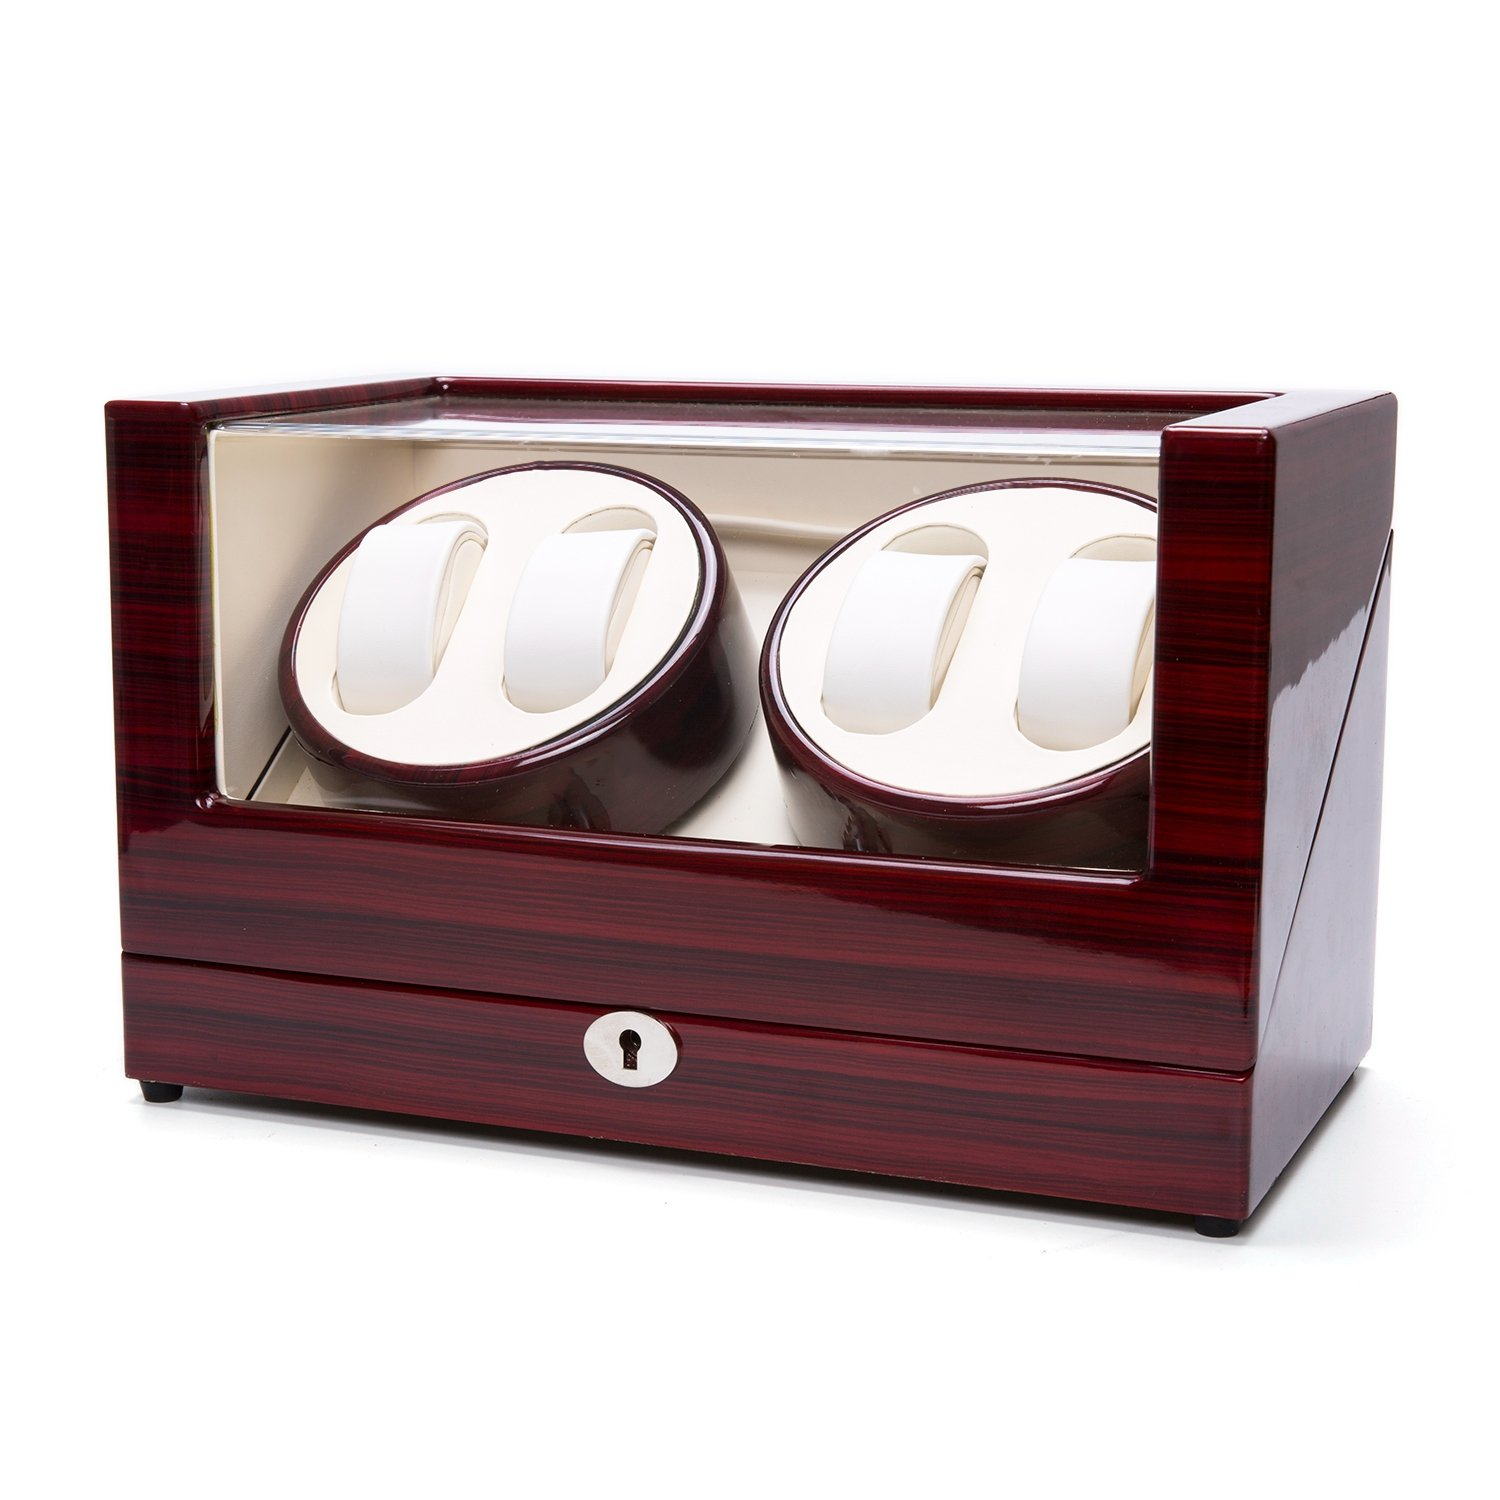 Watch Winder Case Automatic Quad Watches Jewelry Storage Cases Display Box by Gregarder (Image #4)